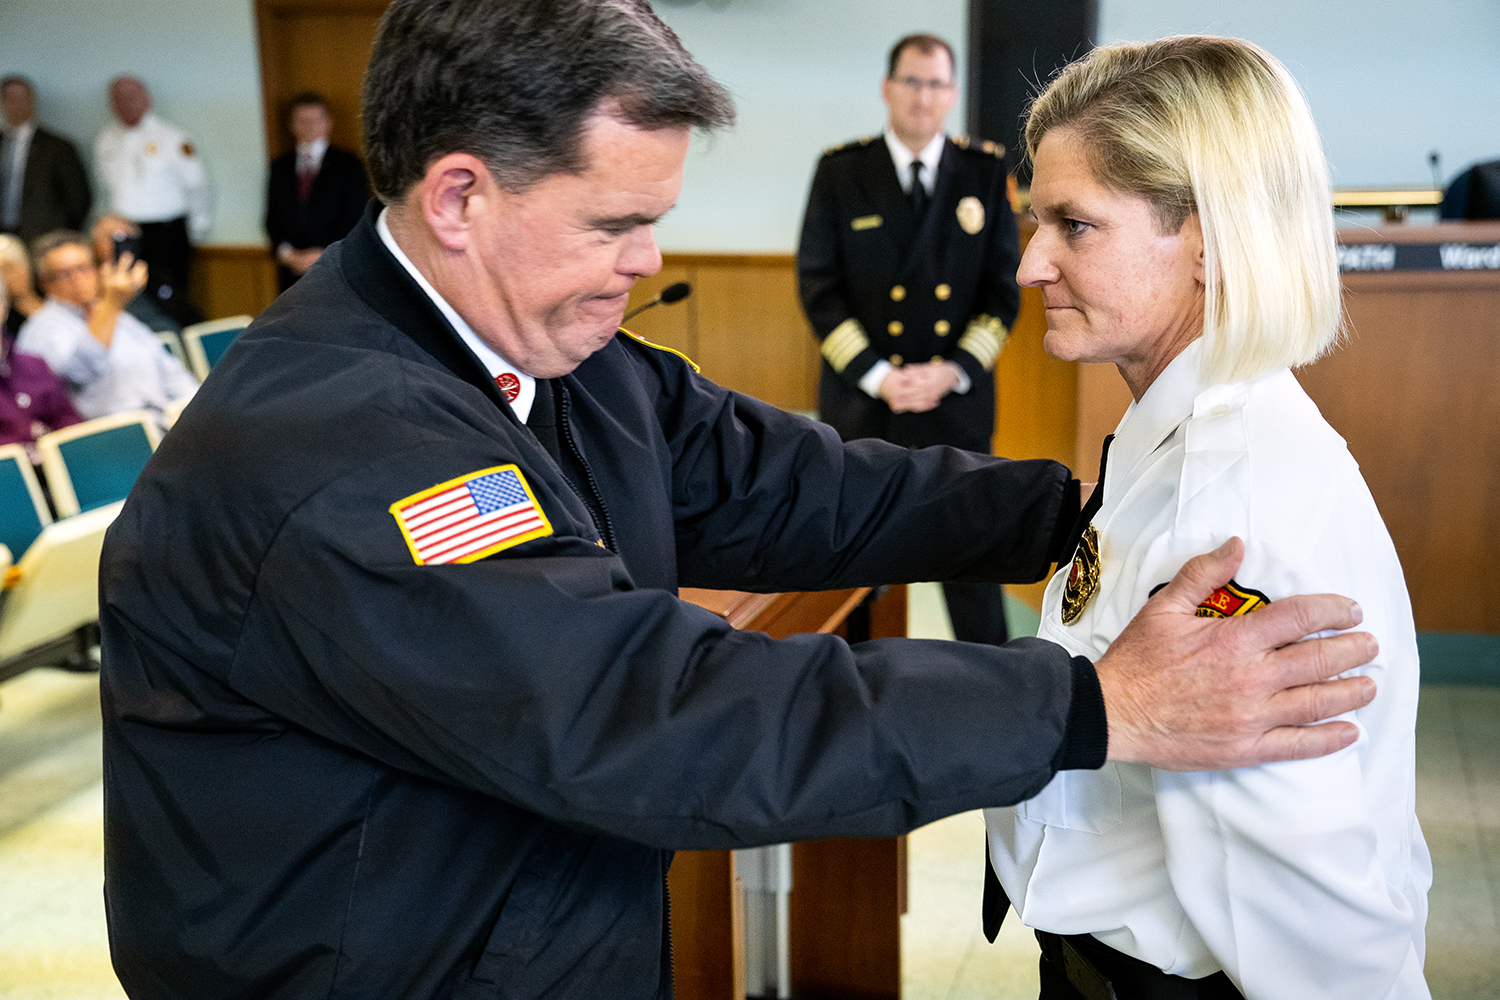 Springfield Fire Department Capt. Heather Moore was one of three department veterans promoted to division chief during a ceremony in the city council chambers Wednesday, April 18 2018 in Springfield, Ill. She's the department's first female to attain the rank. Patrick Kenny, a close friend of Moore's, pinned her badge. [Rich Saal/The State Journal-Register]